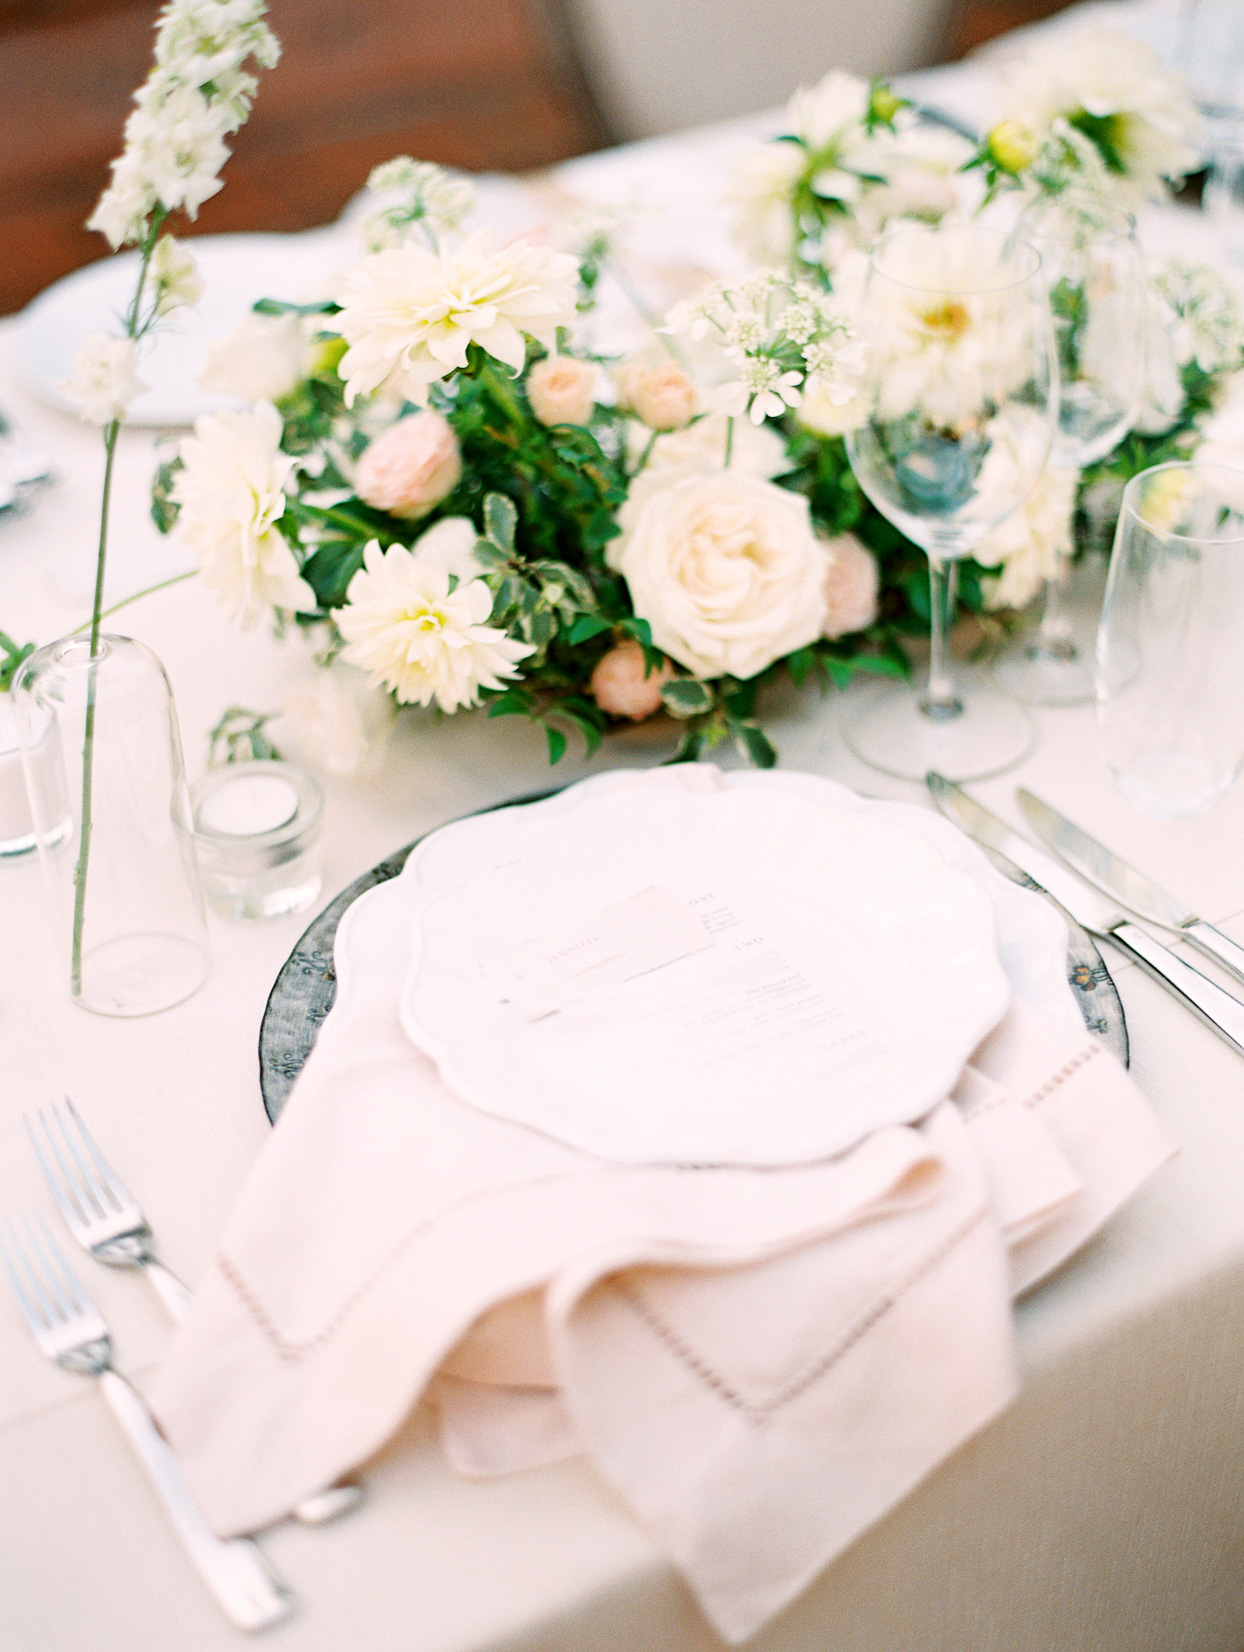 wedding reception white place setting with low florals